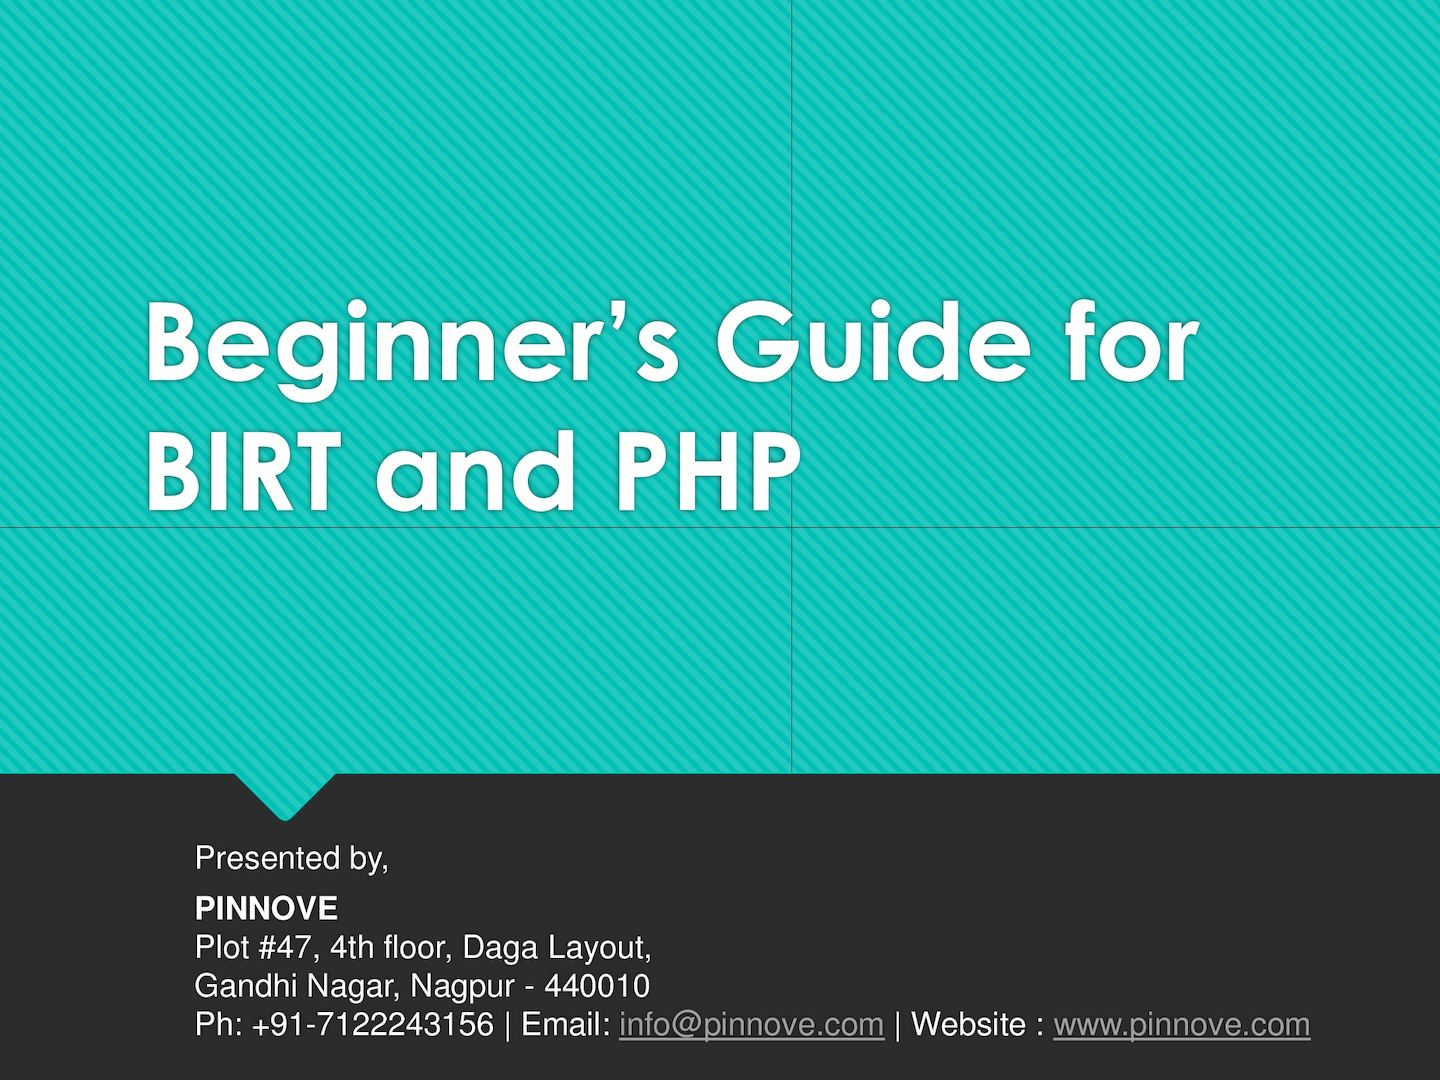 Calaméo - Beginner's Guide For Birt And Php